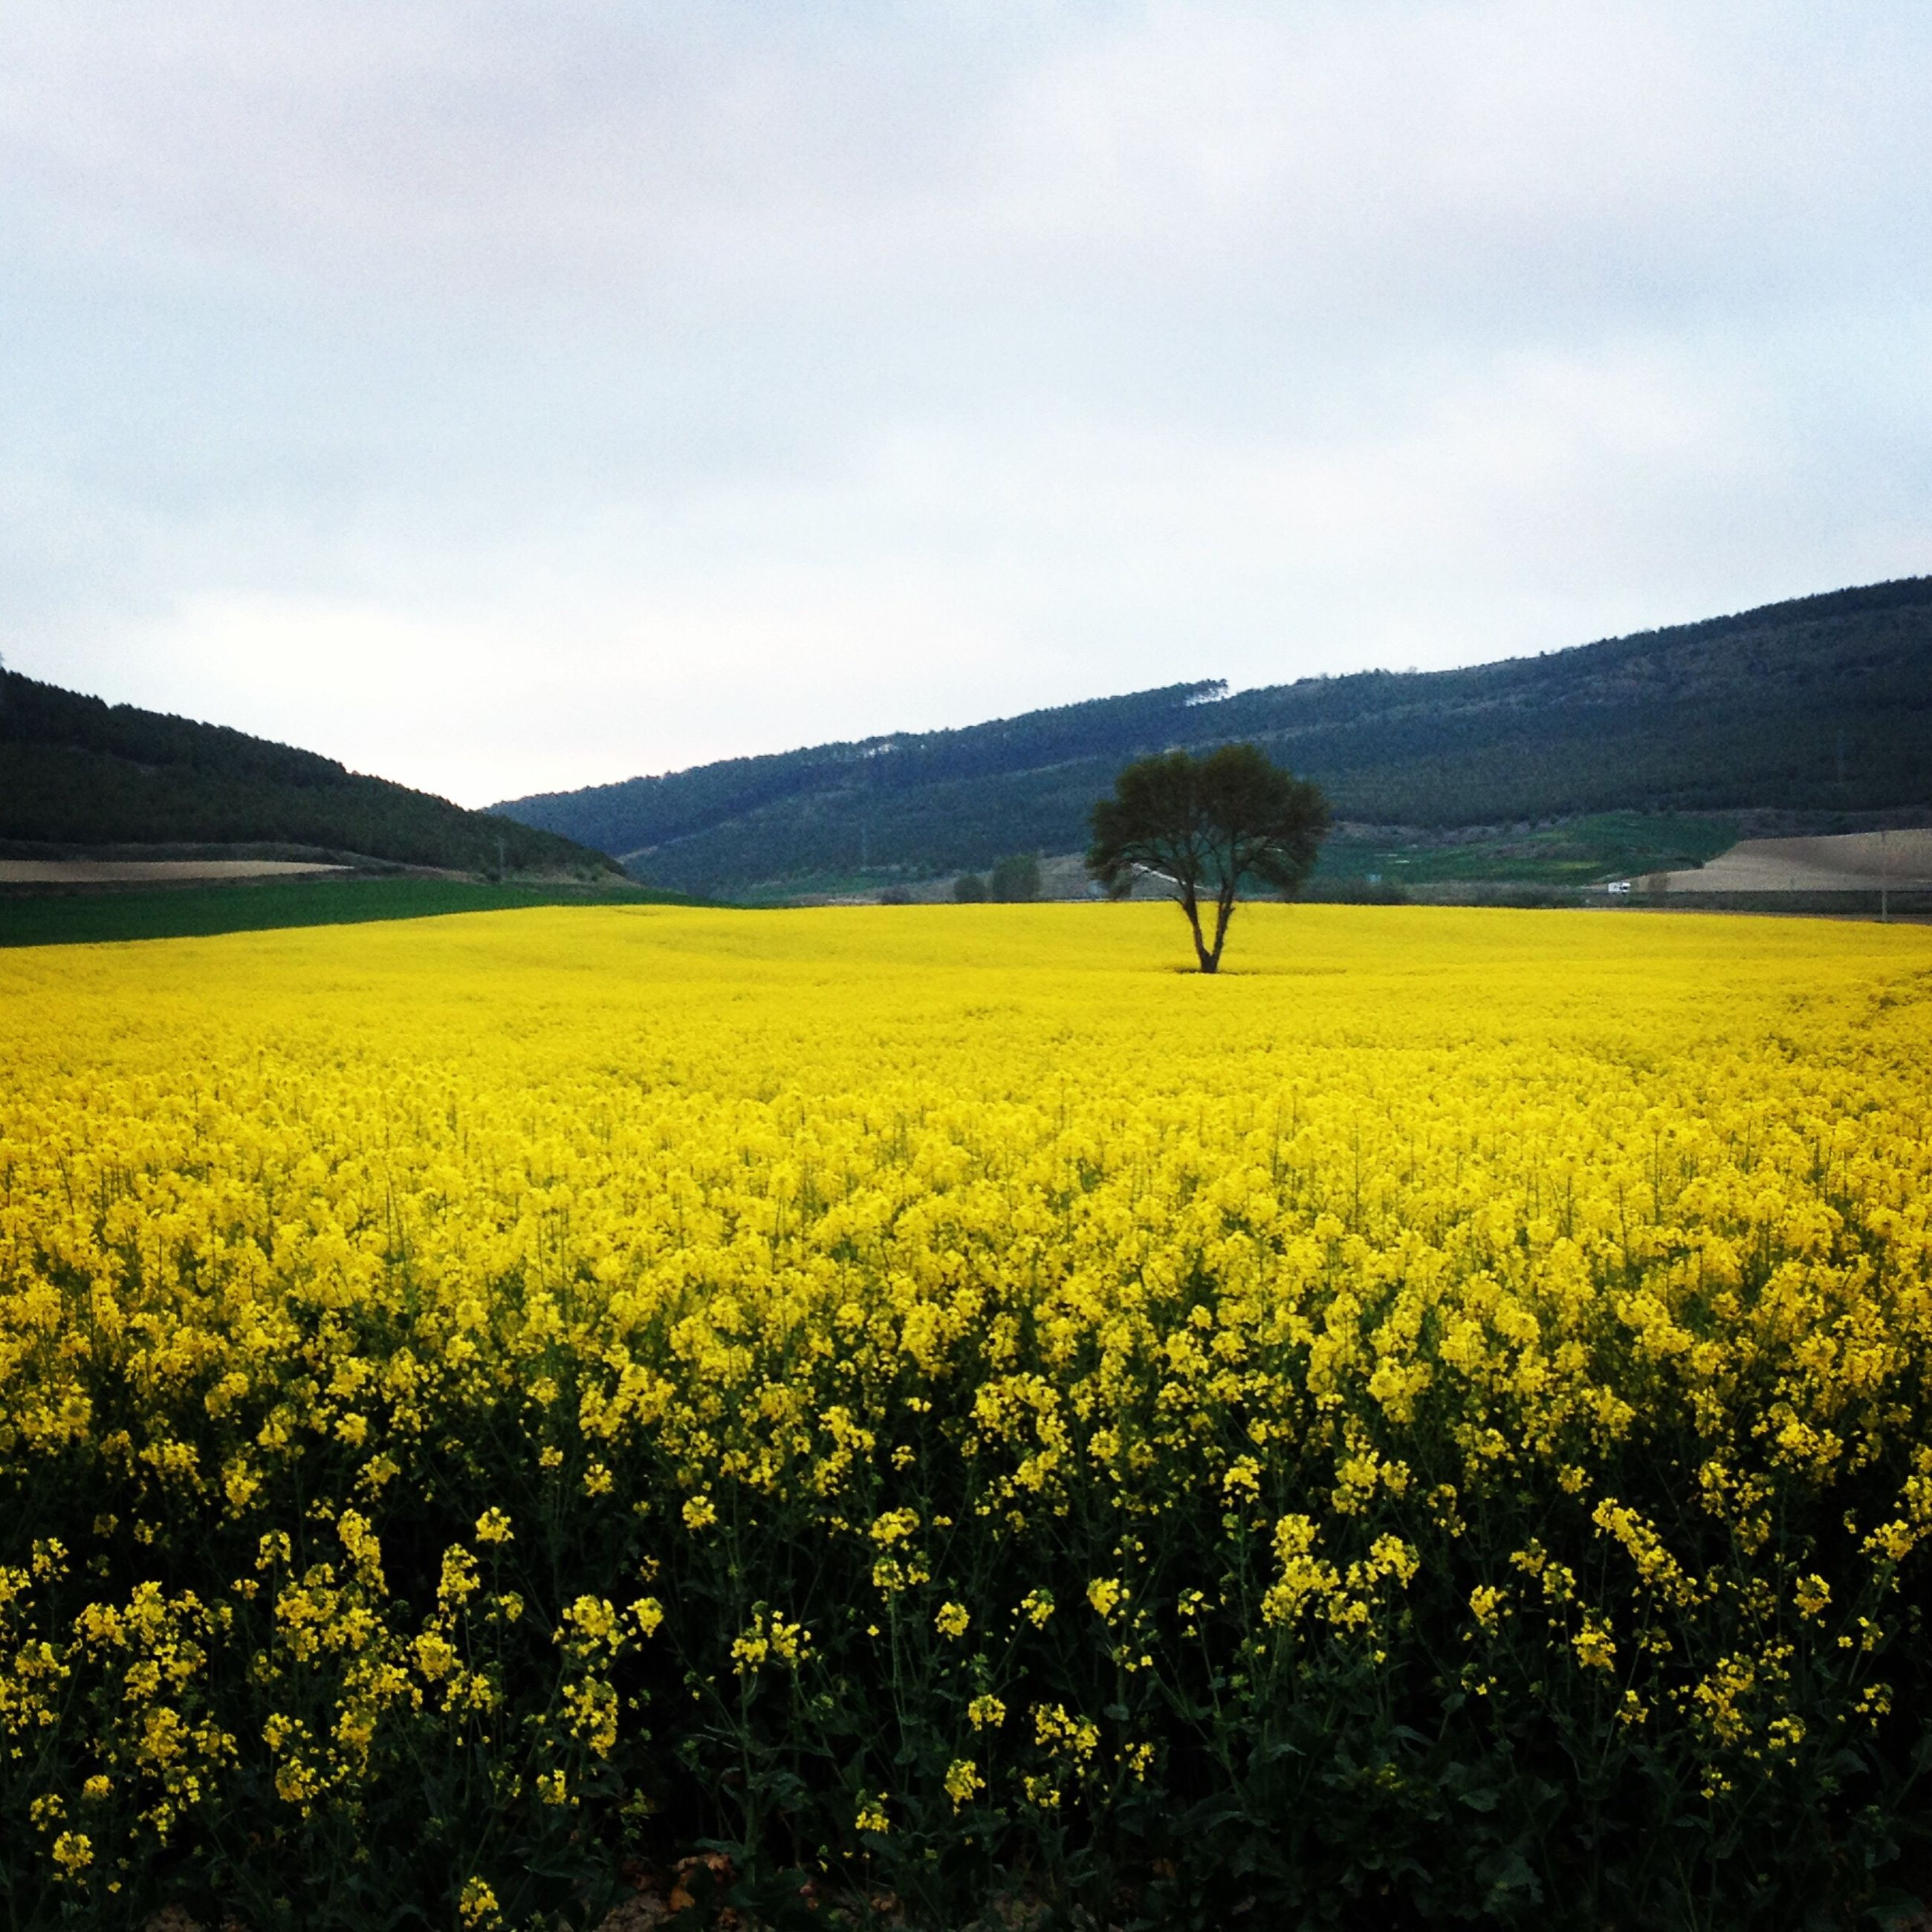 yellow, flower, beauty in nature, field, rural scene, agriculture, landscape, tranquil scene, growth, nature, freshness, oilseed rape, scenics, tranquility, sky, farm, mountain, abundance, fragility, plant